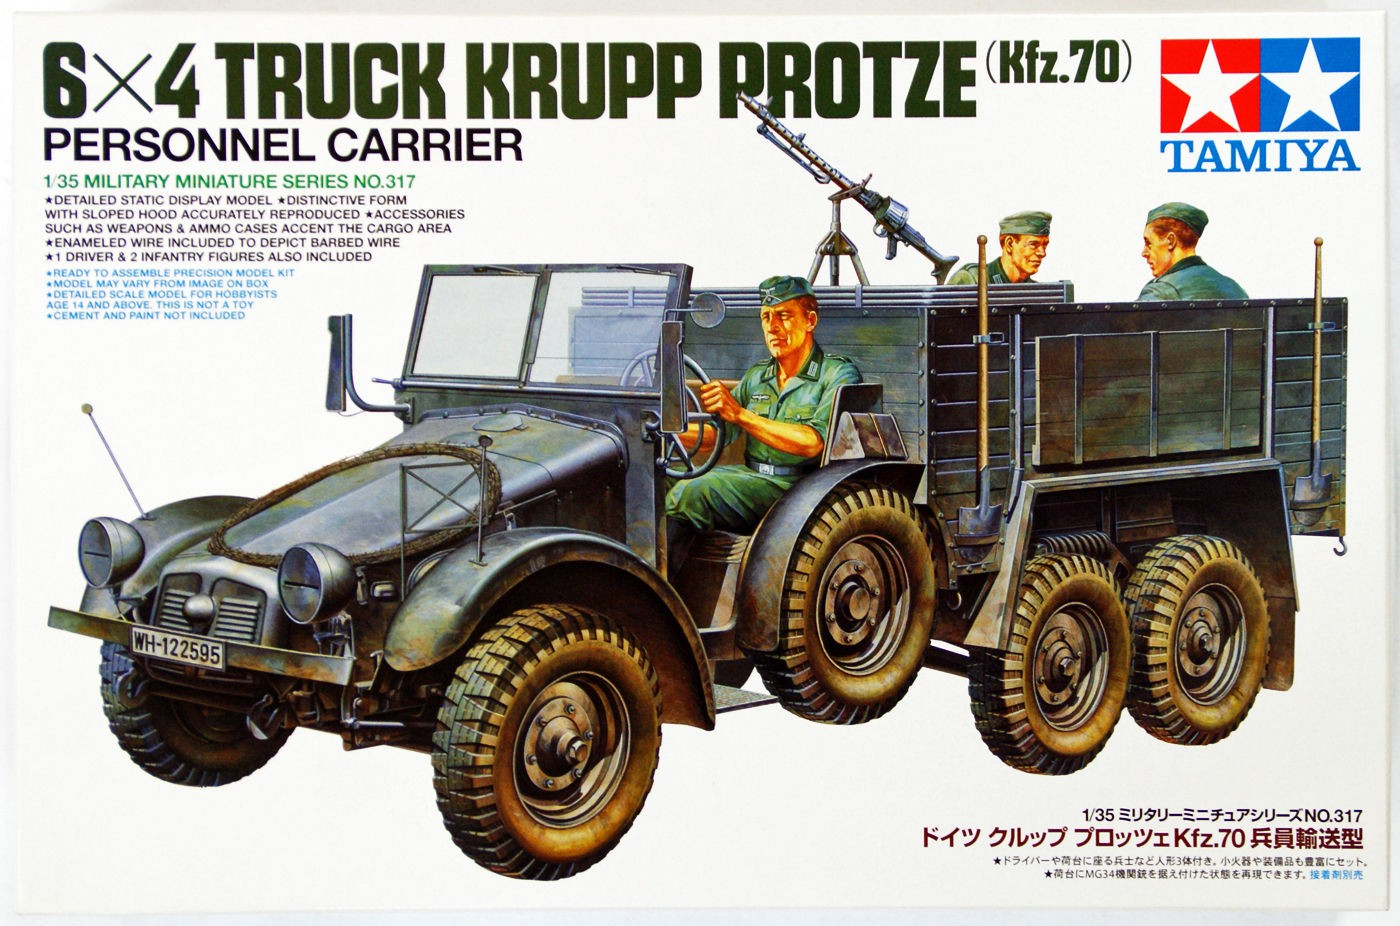 German 6x4 Truck Krupp Protze - with 3 Figures - Tamiya 35317 - plastic model kit - 1/35 scale